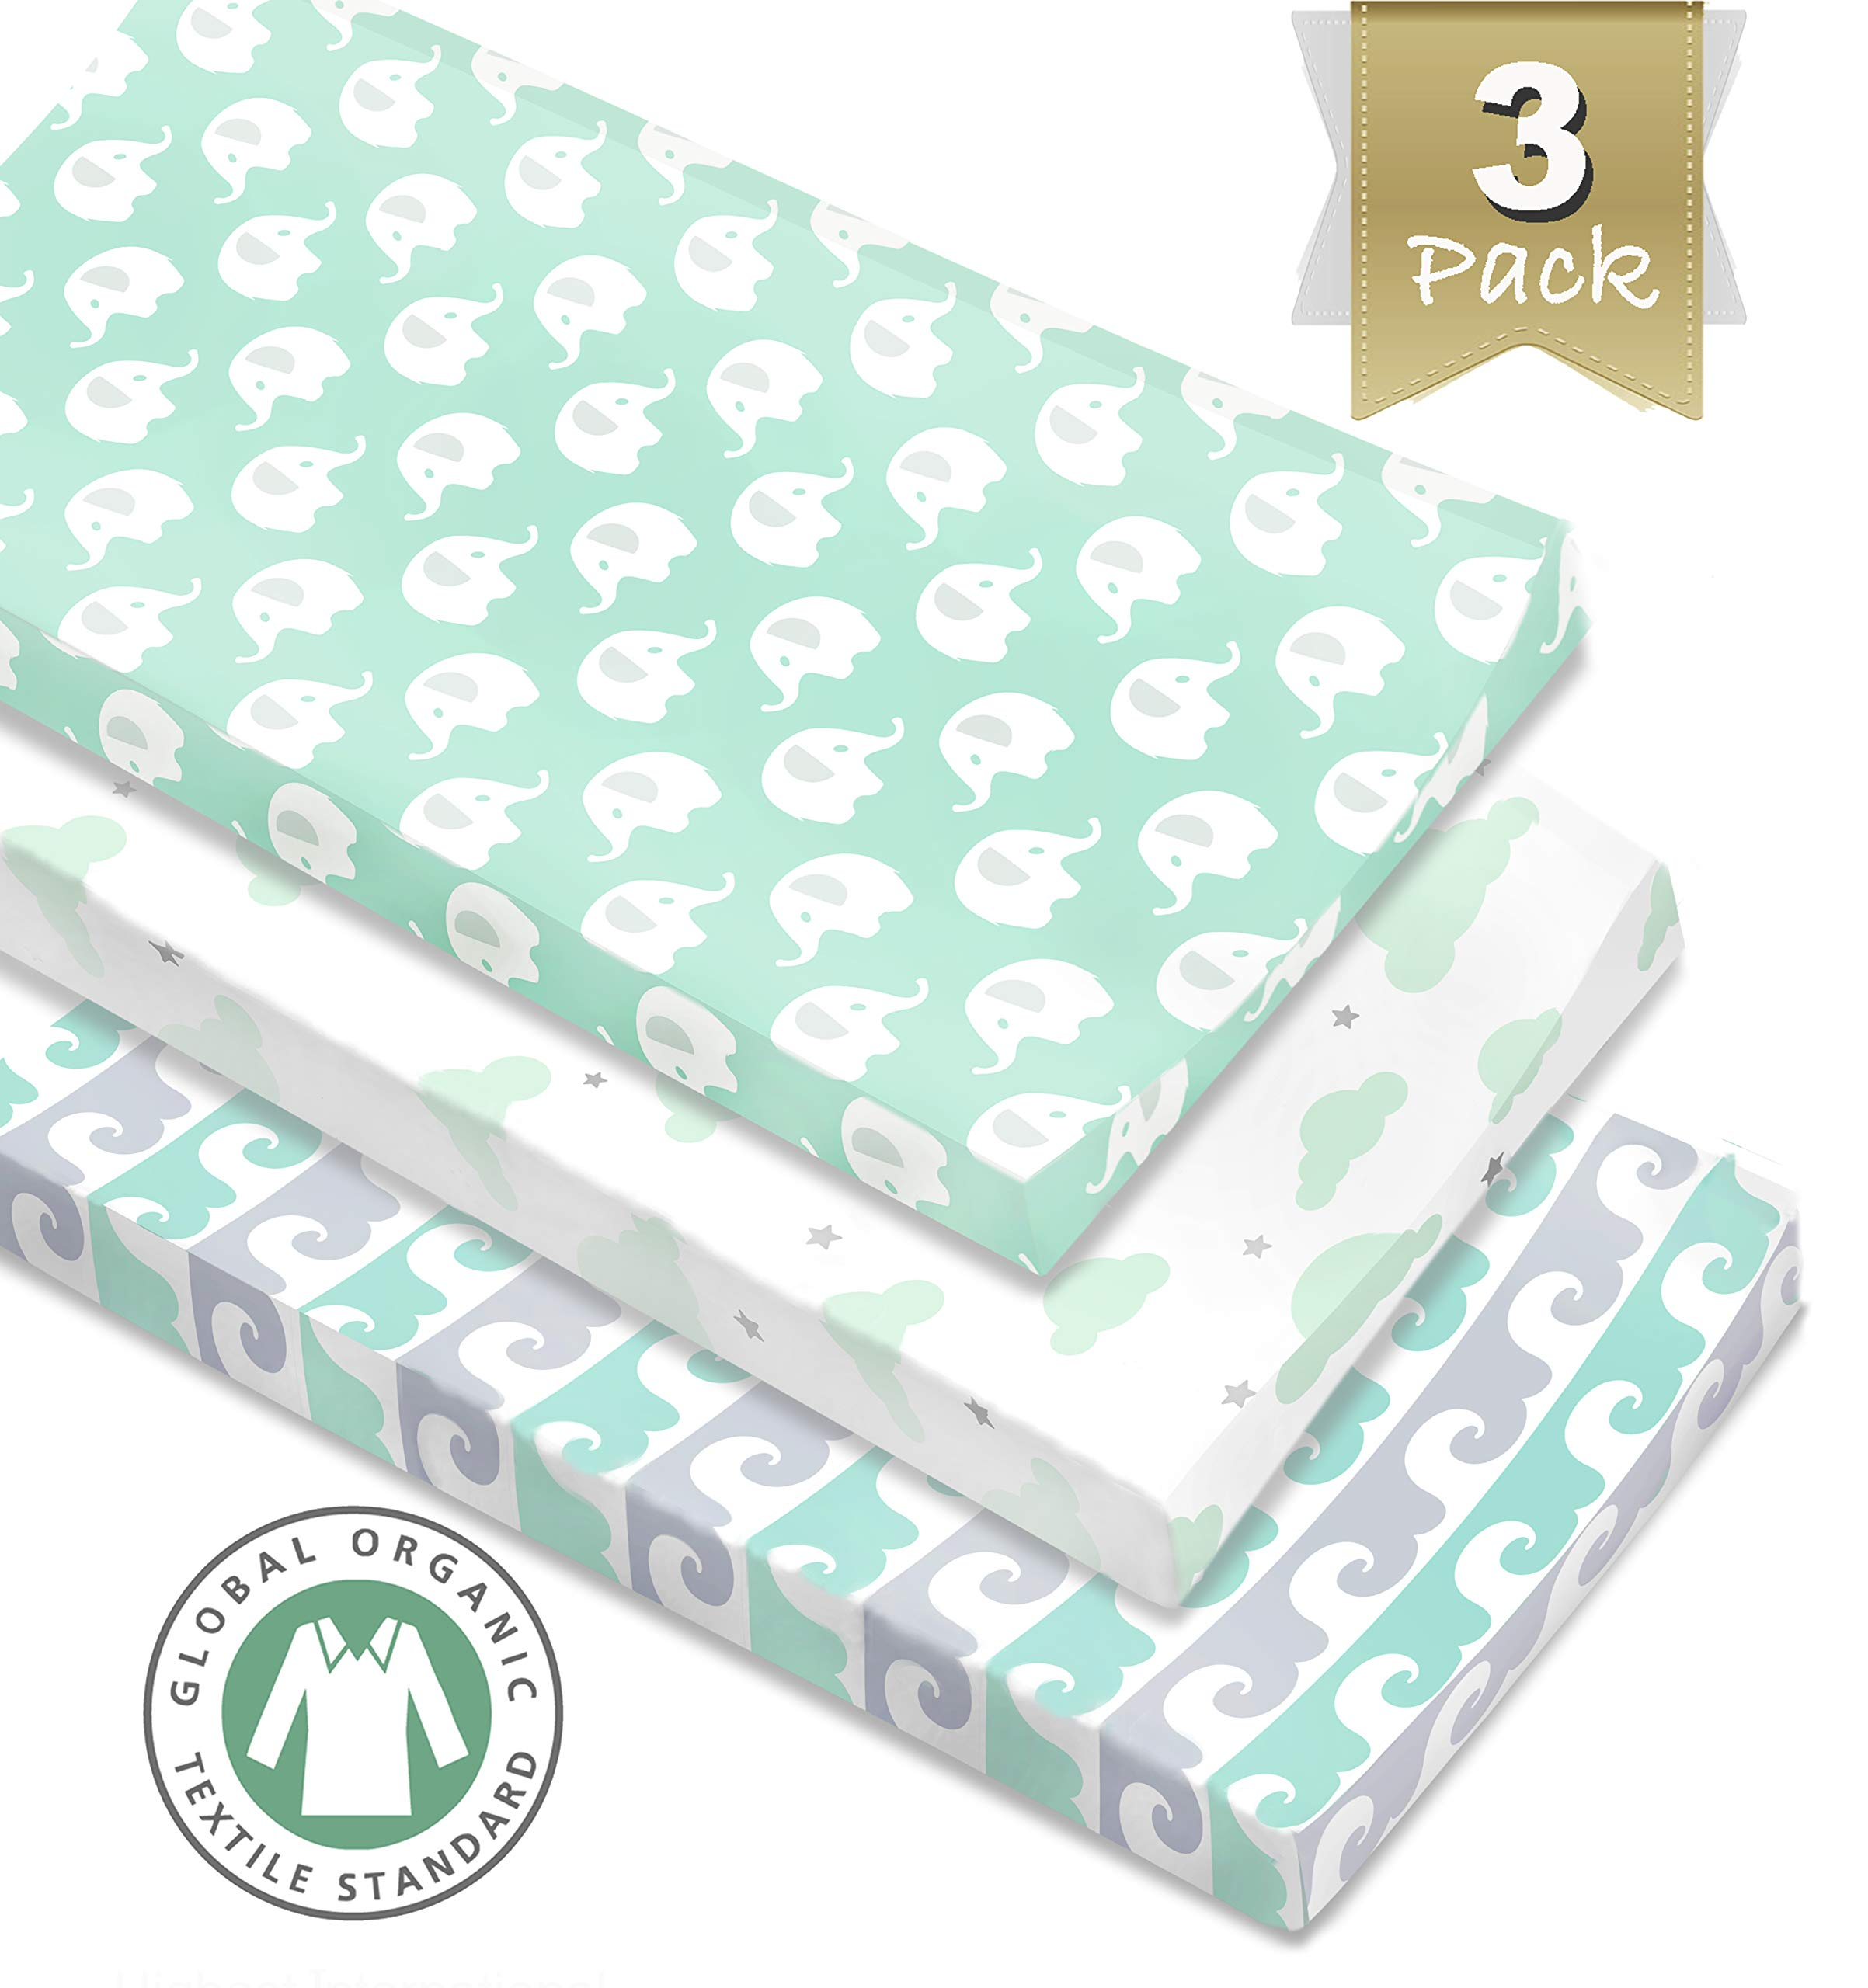 3 Pack Organic Cotton Changing Pad Covers or Cradle Sheet, Mint/Gray Unisex for Boy or Girl with Safety Belt Holes.